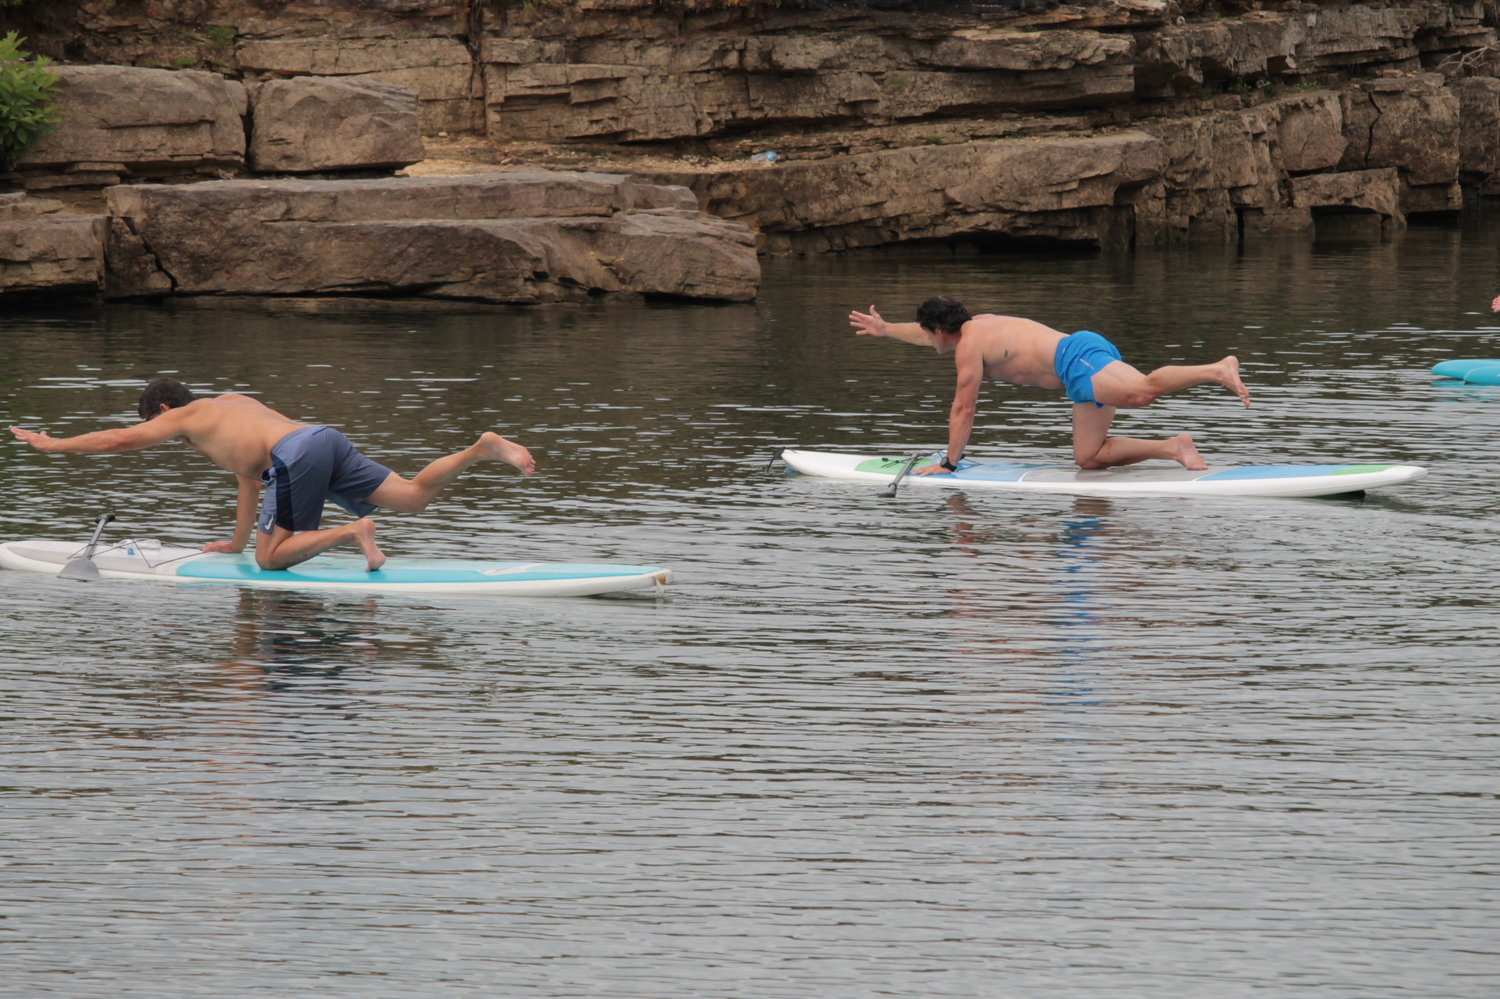 Six students participated in a free paddle board yoga class at Smith Lake Dame on Saturday.